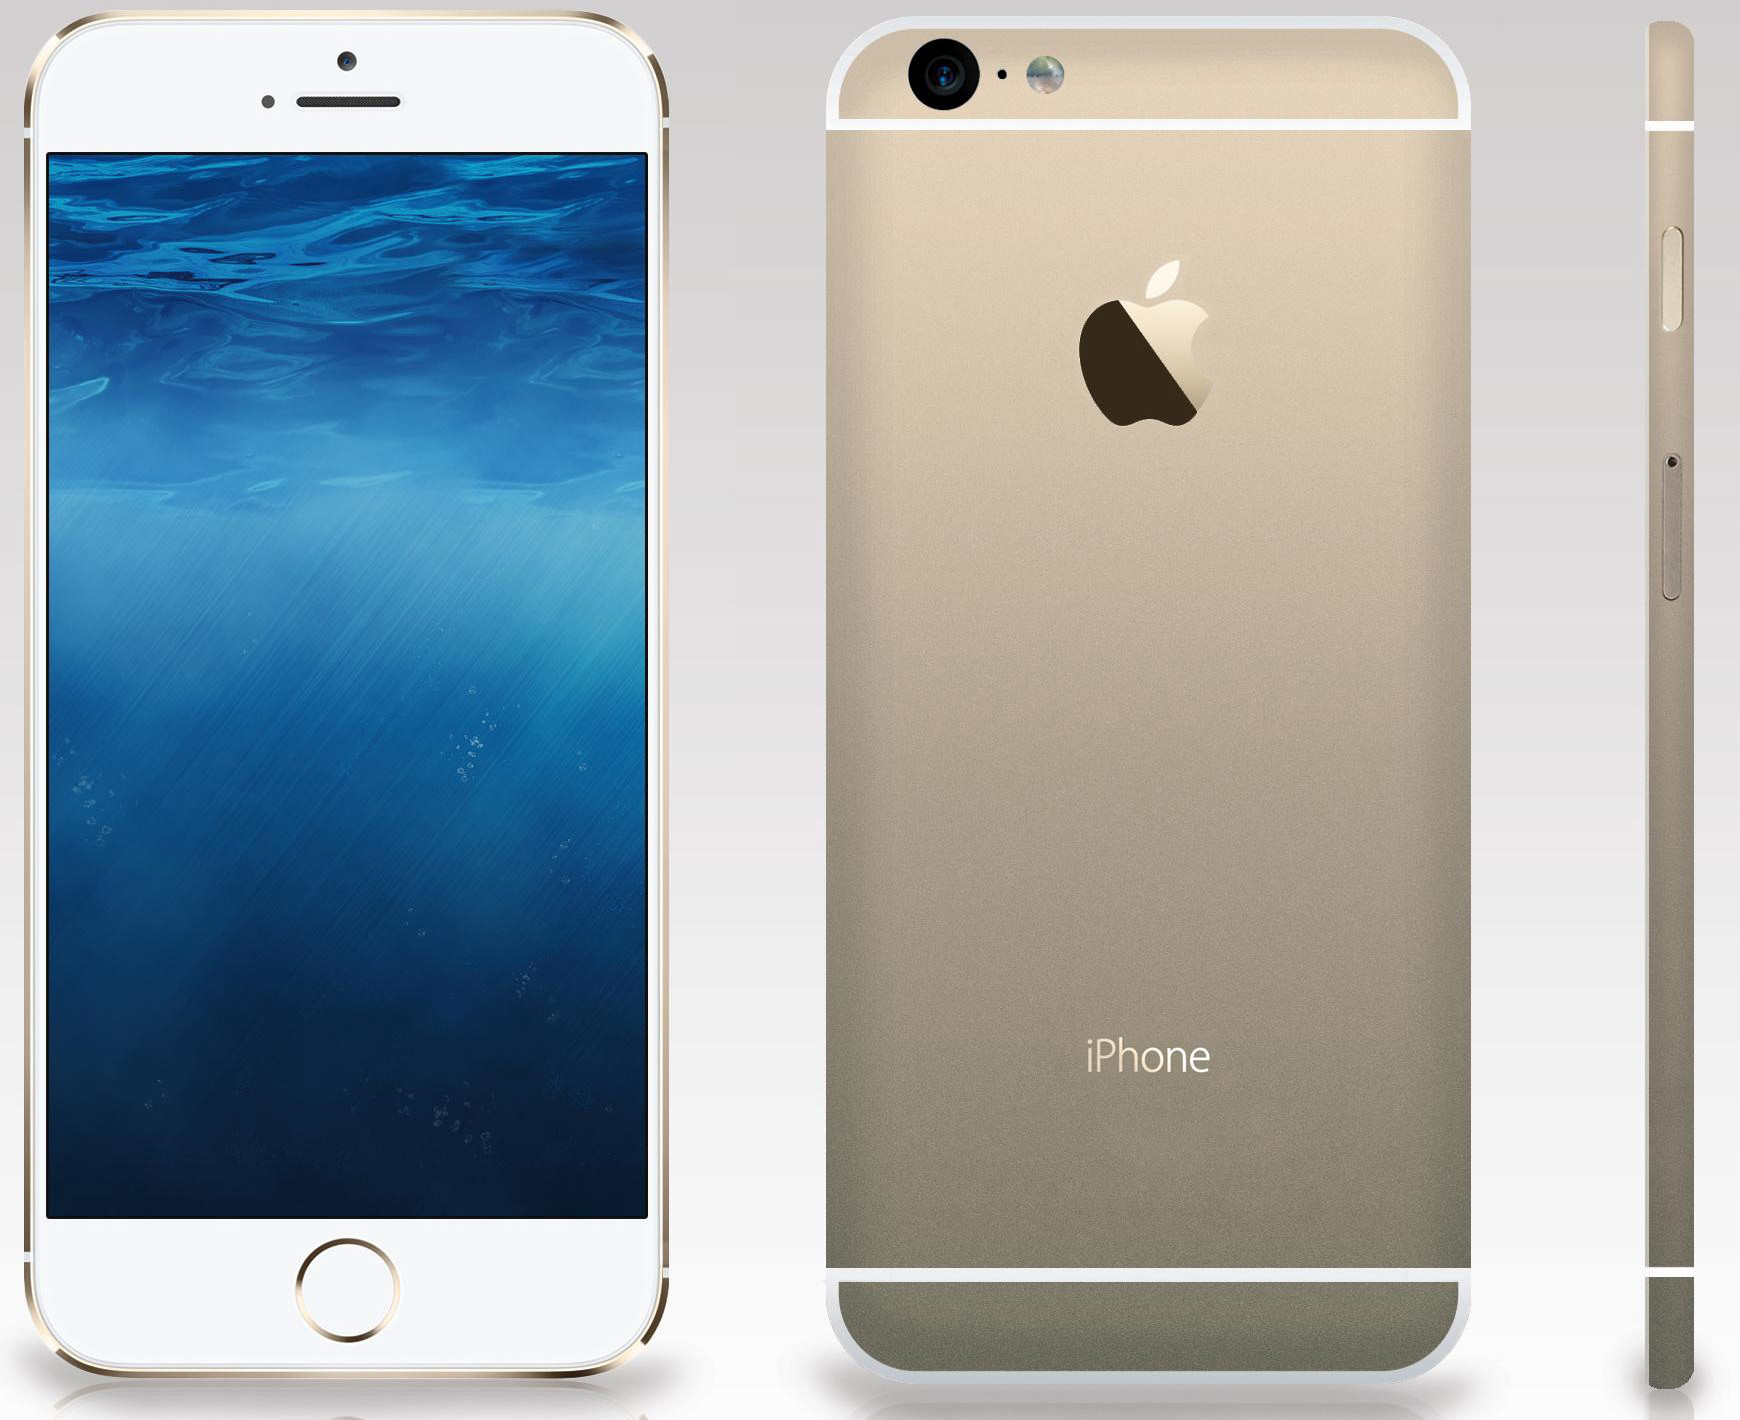 iphone 6 price t mobile apple iphone 6 t mobile 64gb specs and price phonegg 1394